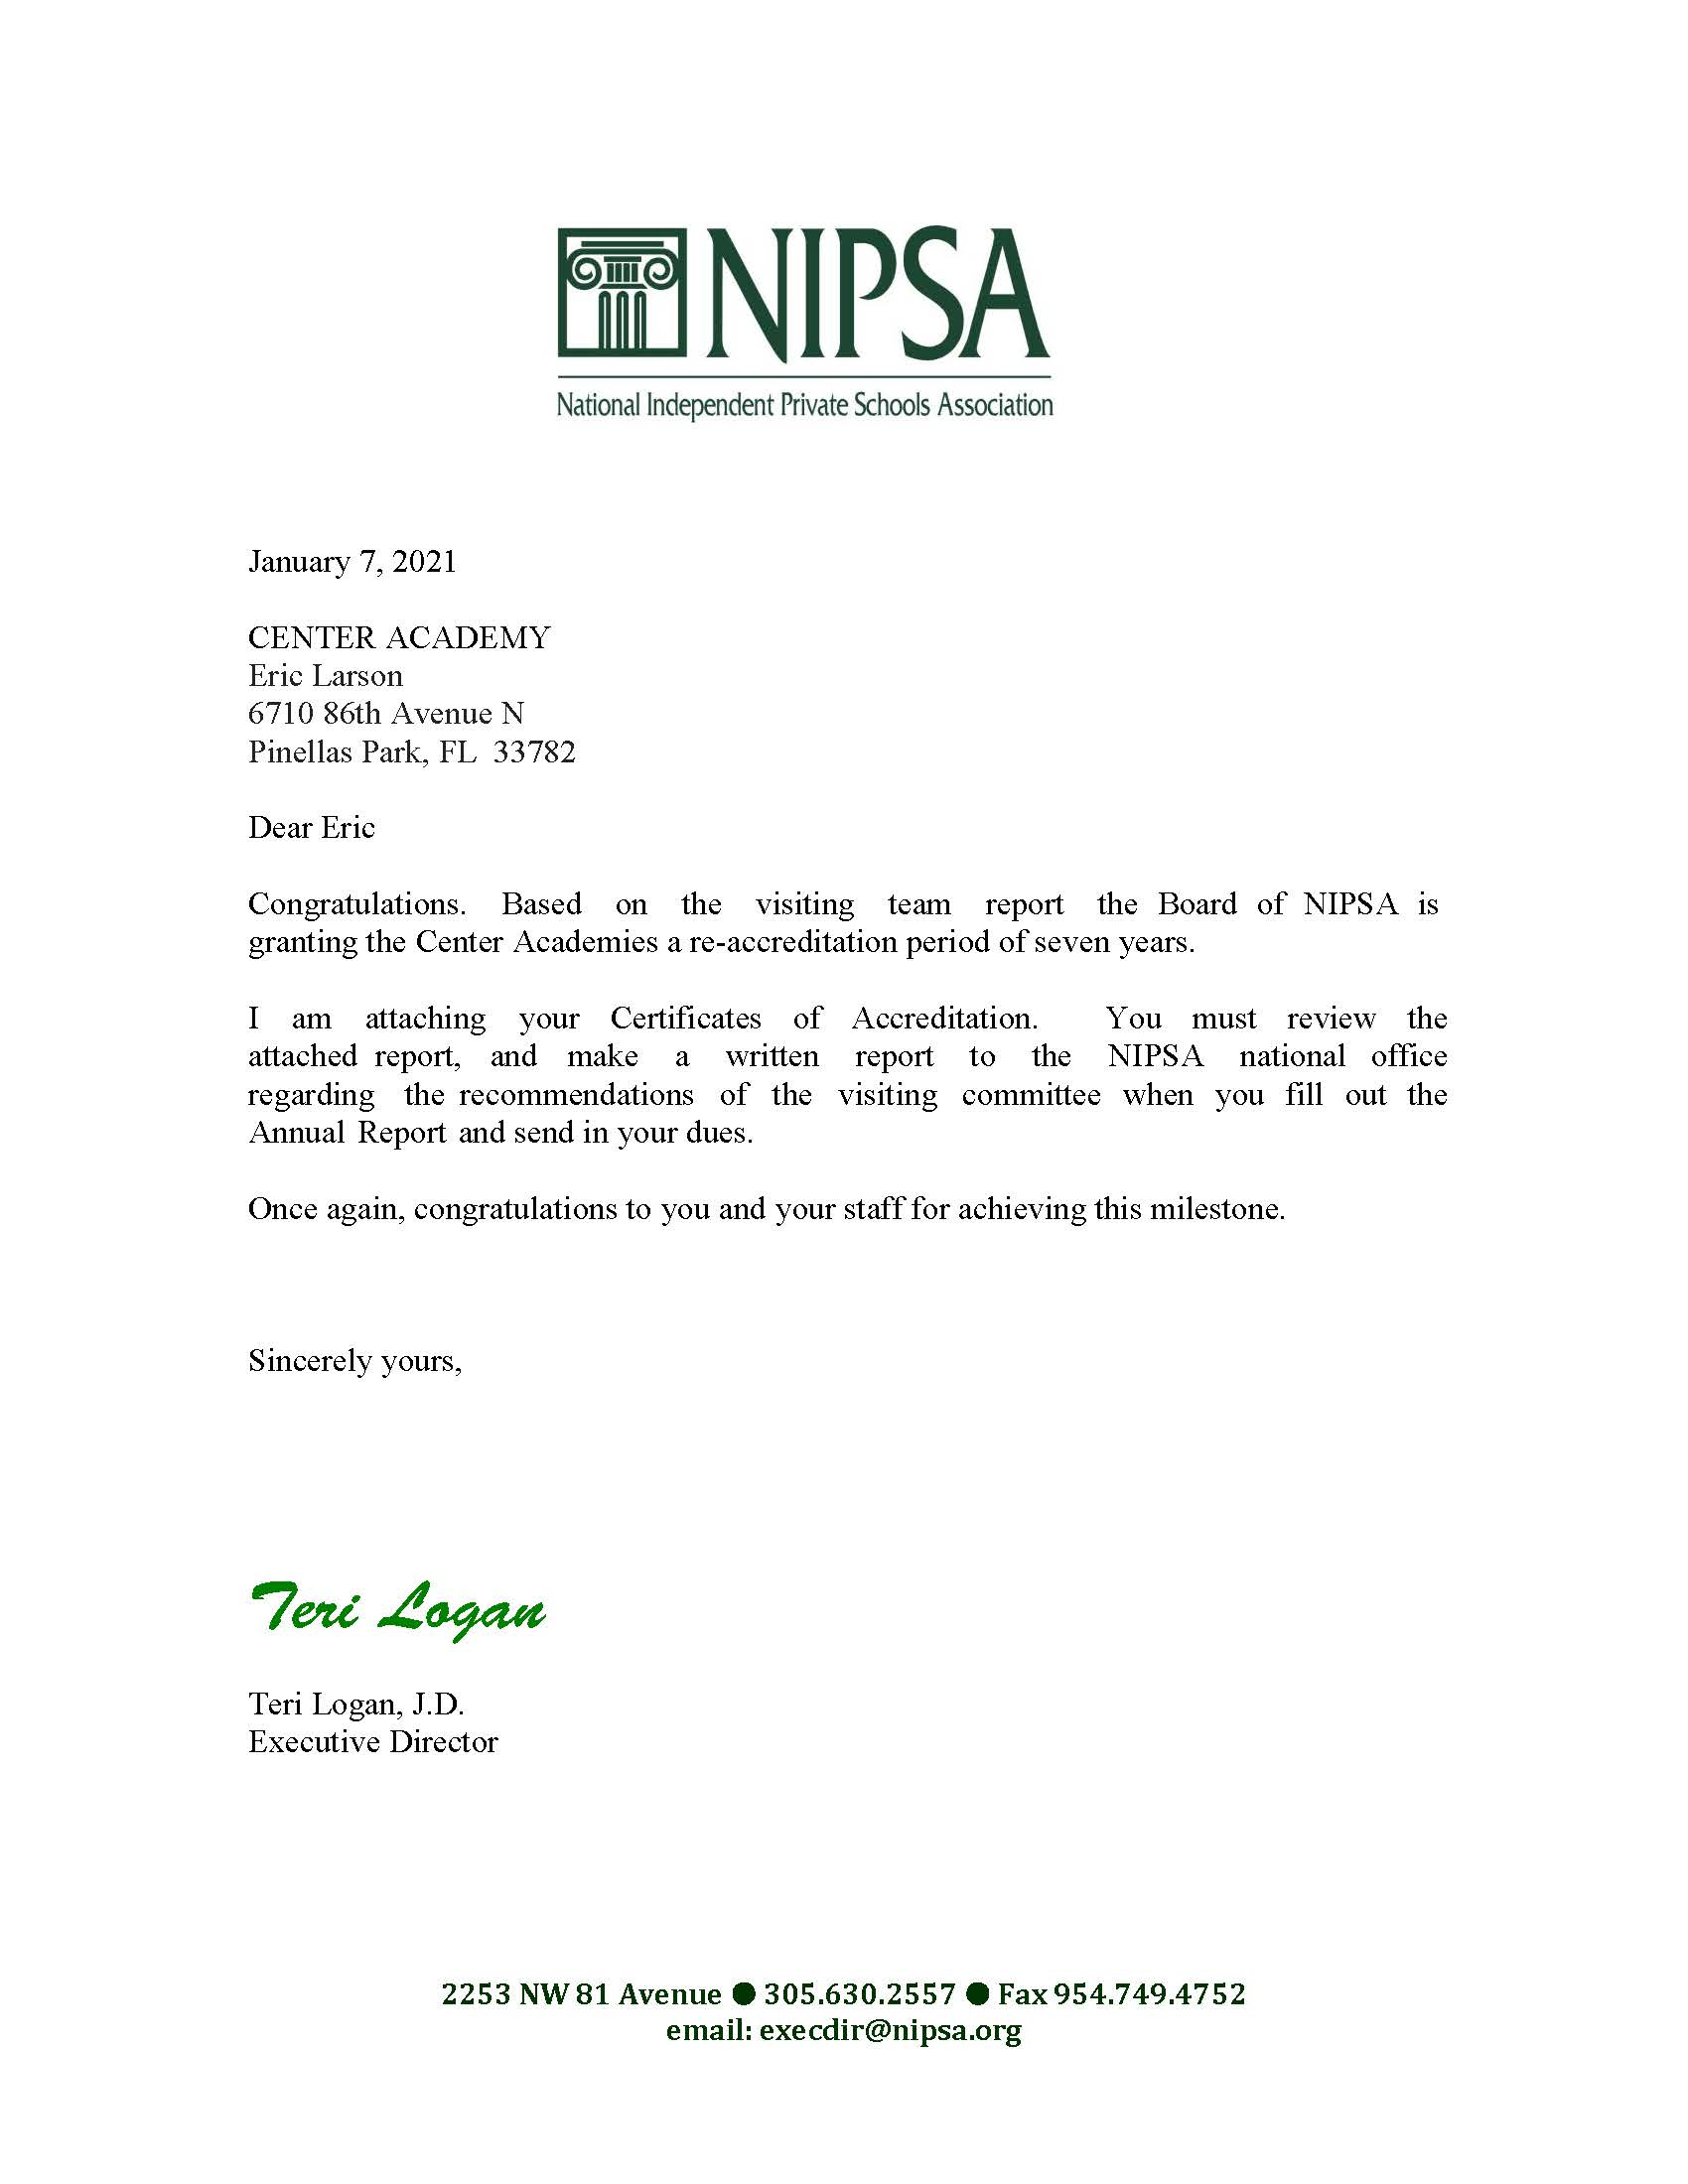 Board of NIPSA awards Certificate of Academic Accreditation